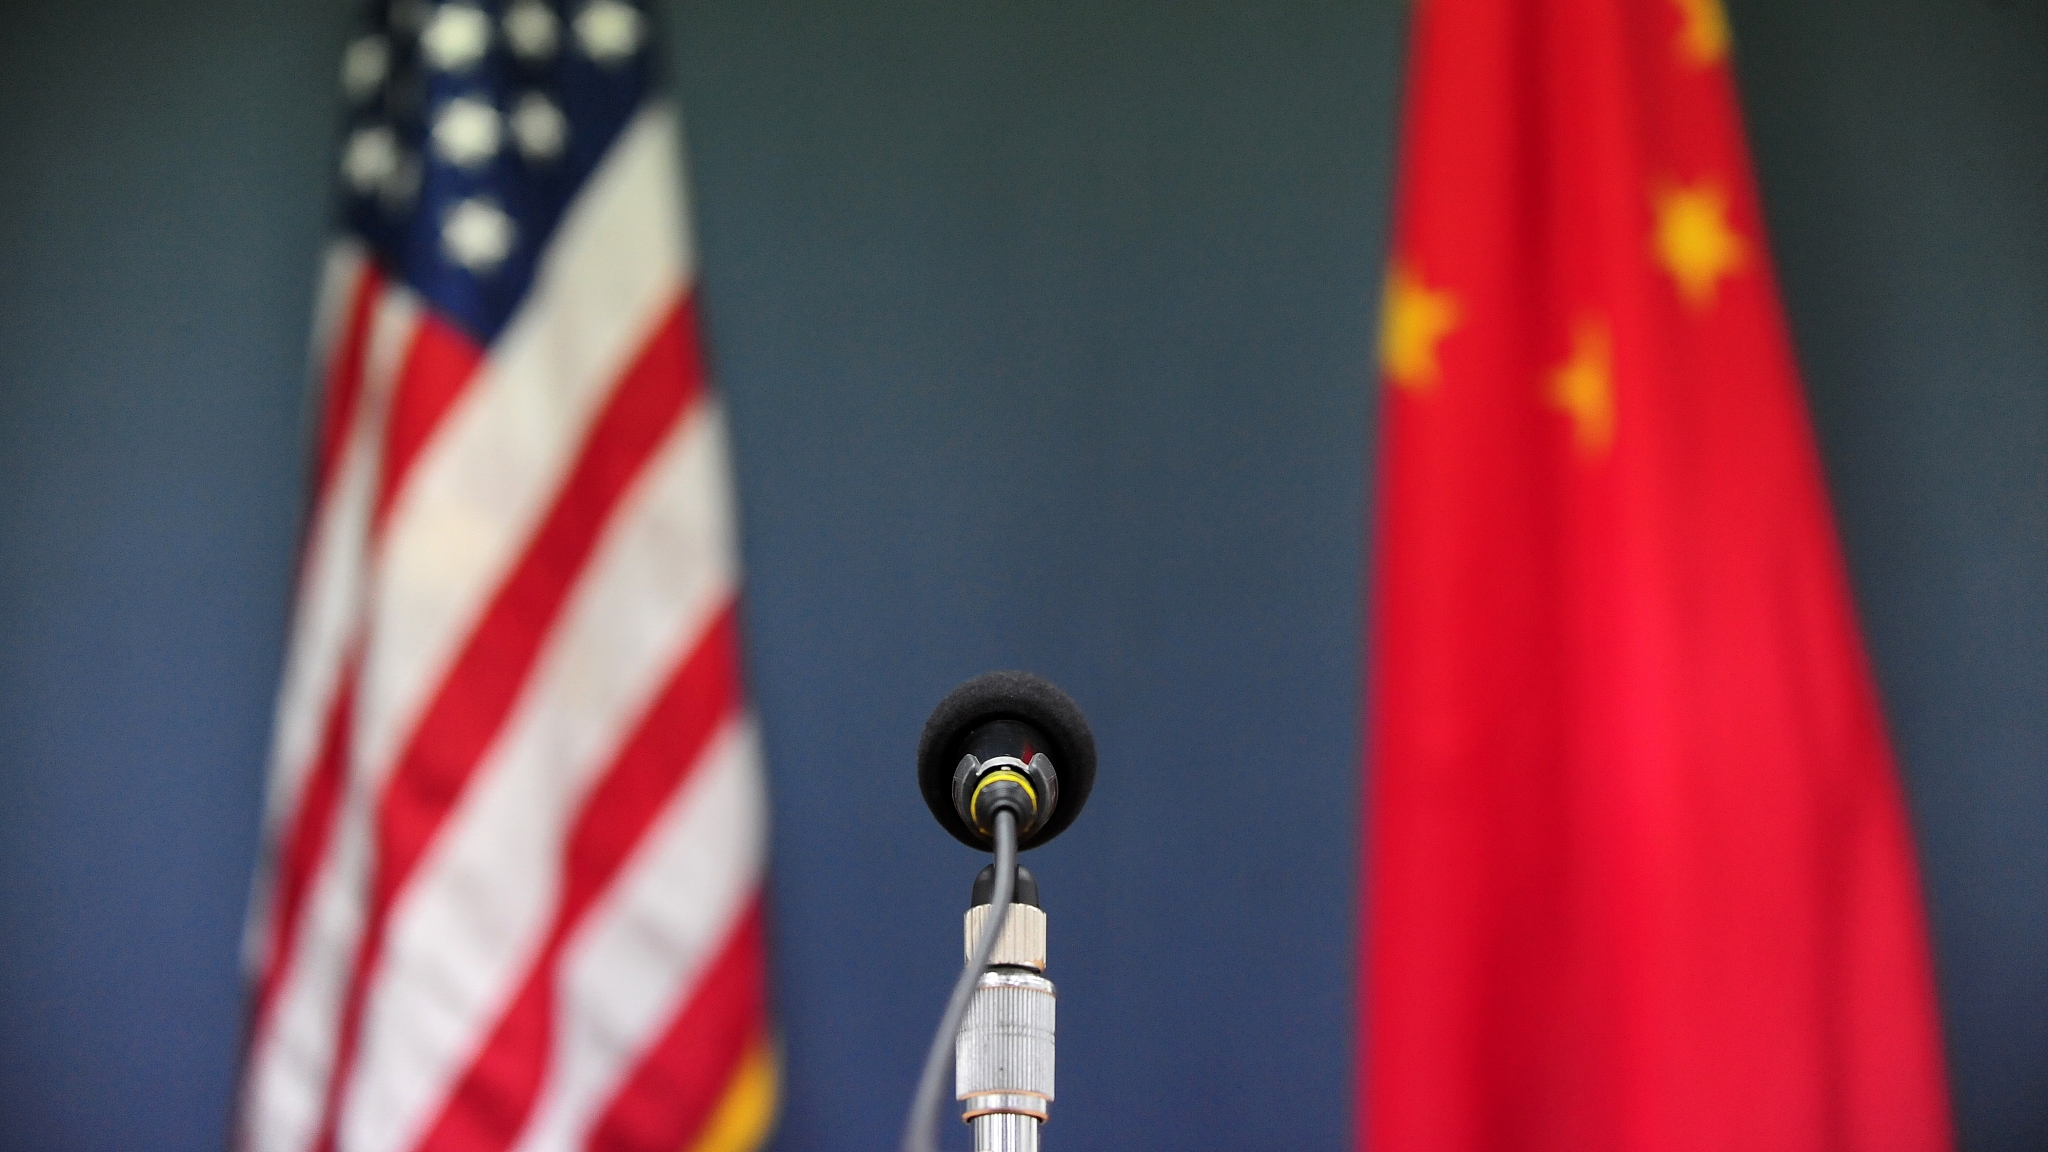 What is at the heart of China-US competition?